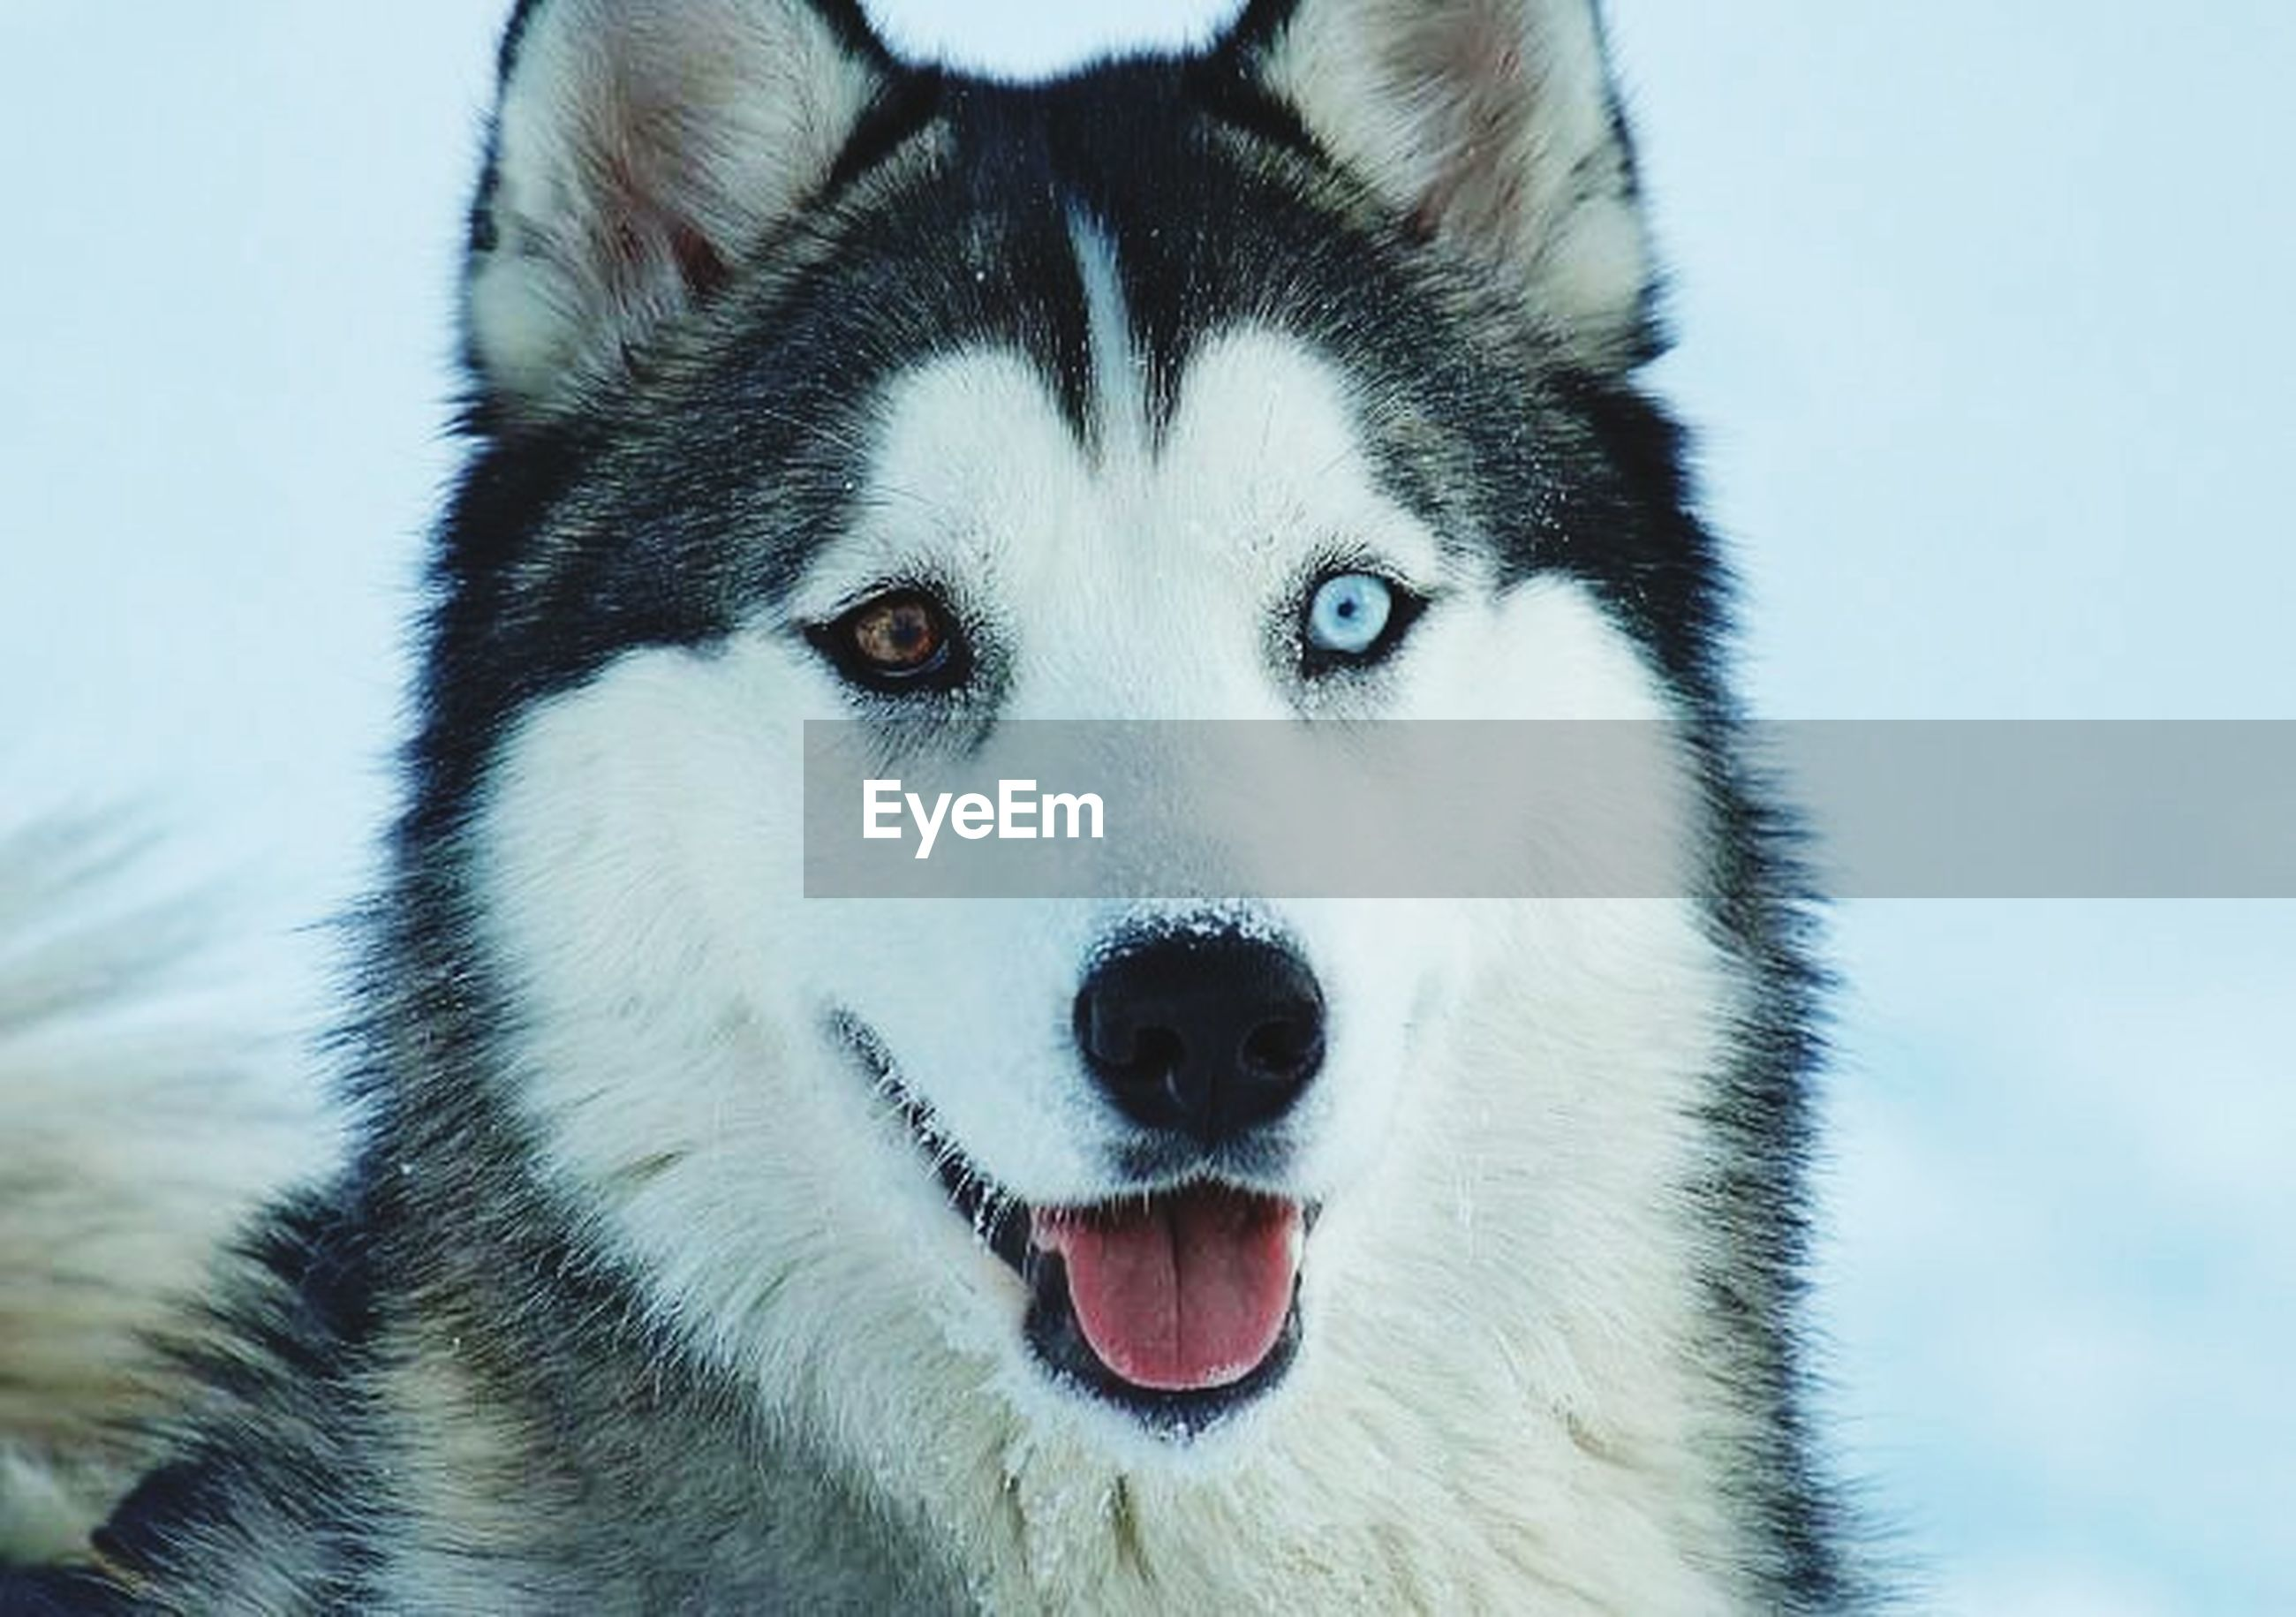 animal themes, one animal, domestic animals, pets, mammal, portrait, dog, looking at camera, animal head, close-up, white color, animal body part, front view, snow, animal hair, winter, focus on foreground, mouth open, animal eye, no people